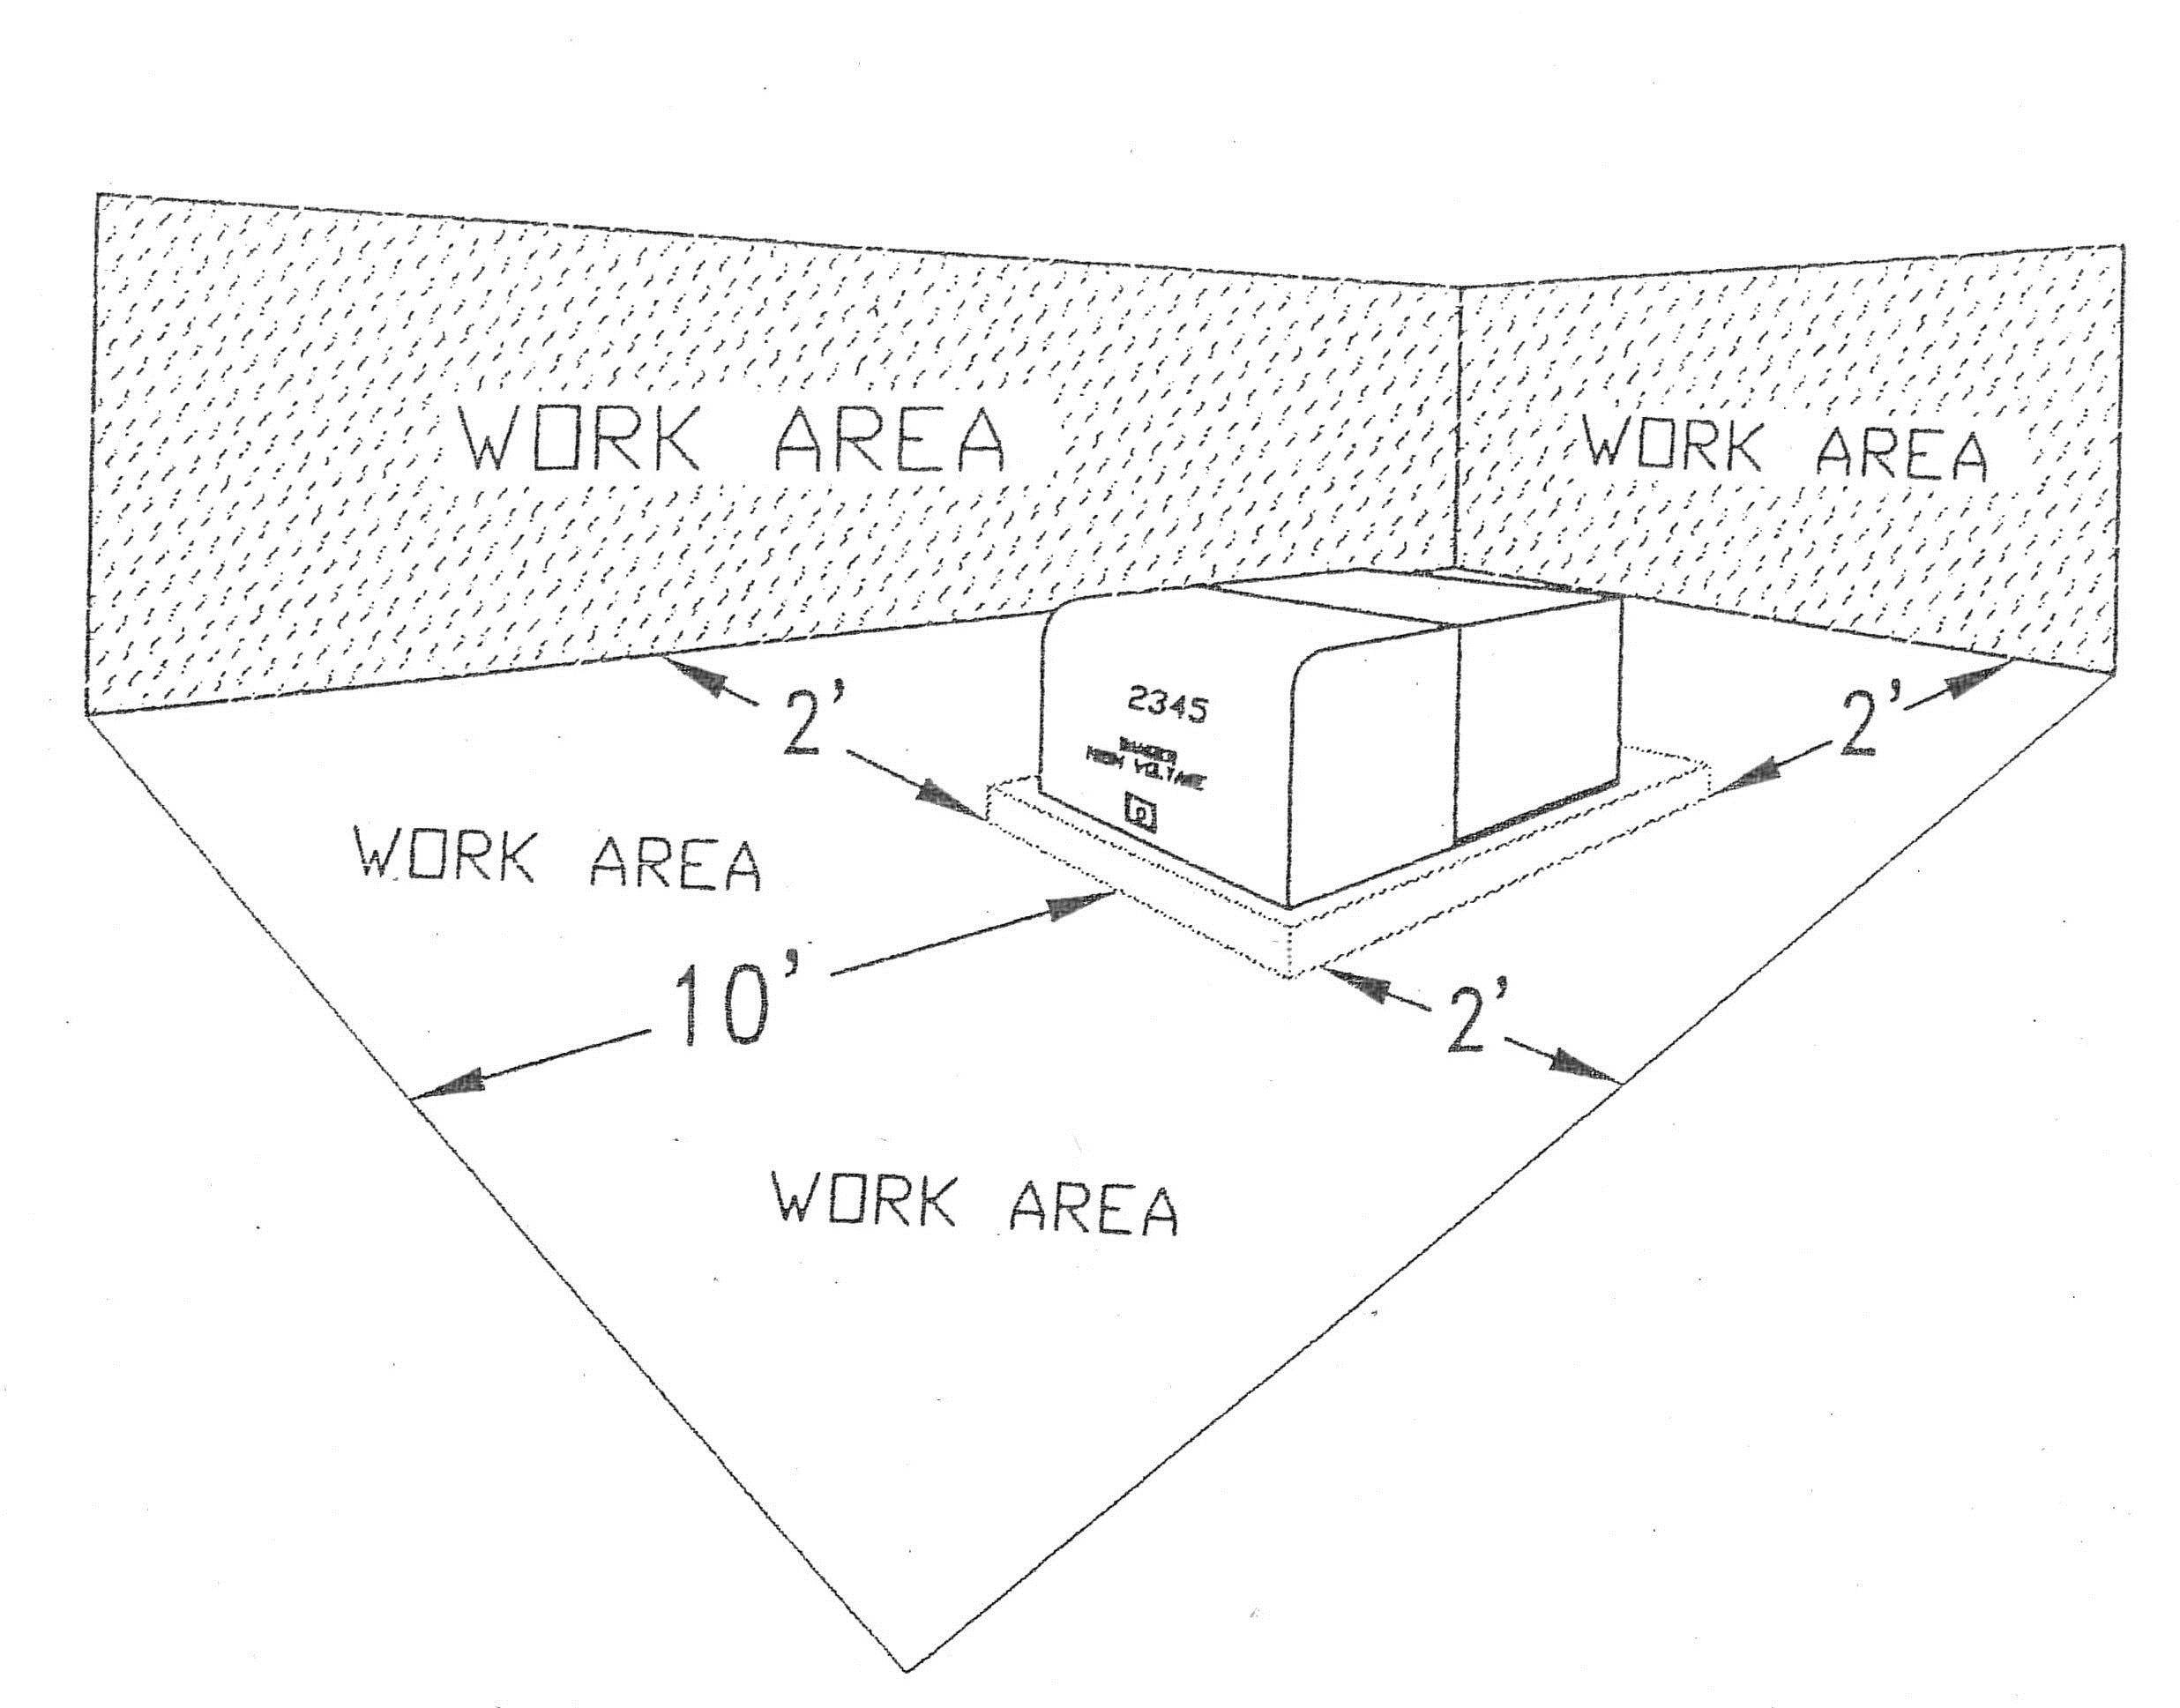 Sketch of work area with measurements to show safe zone